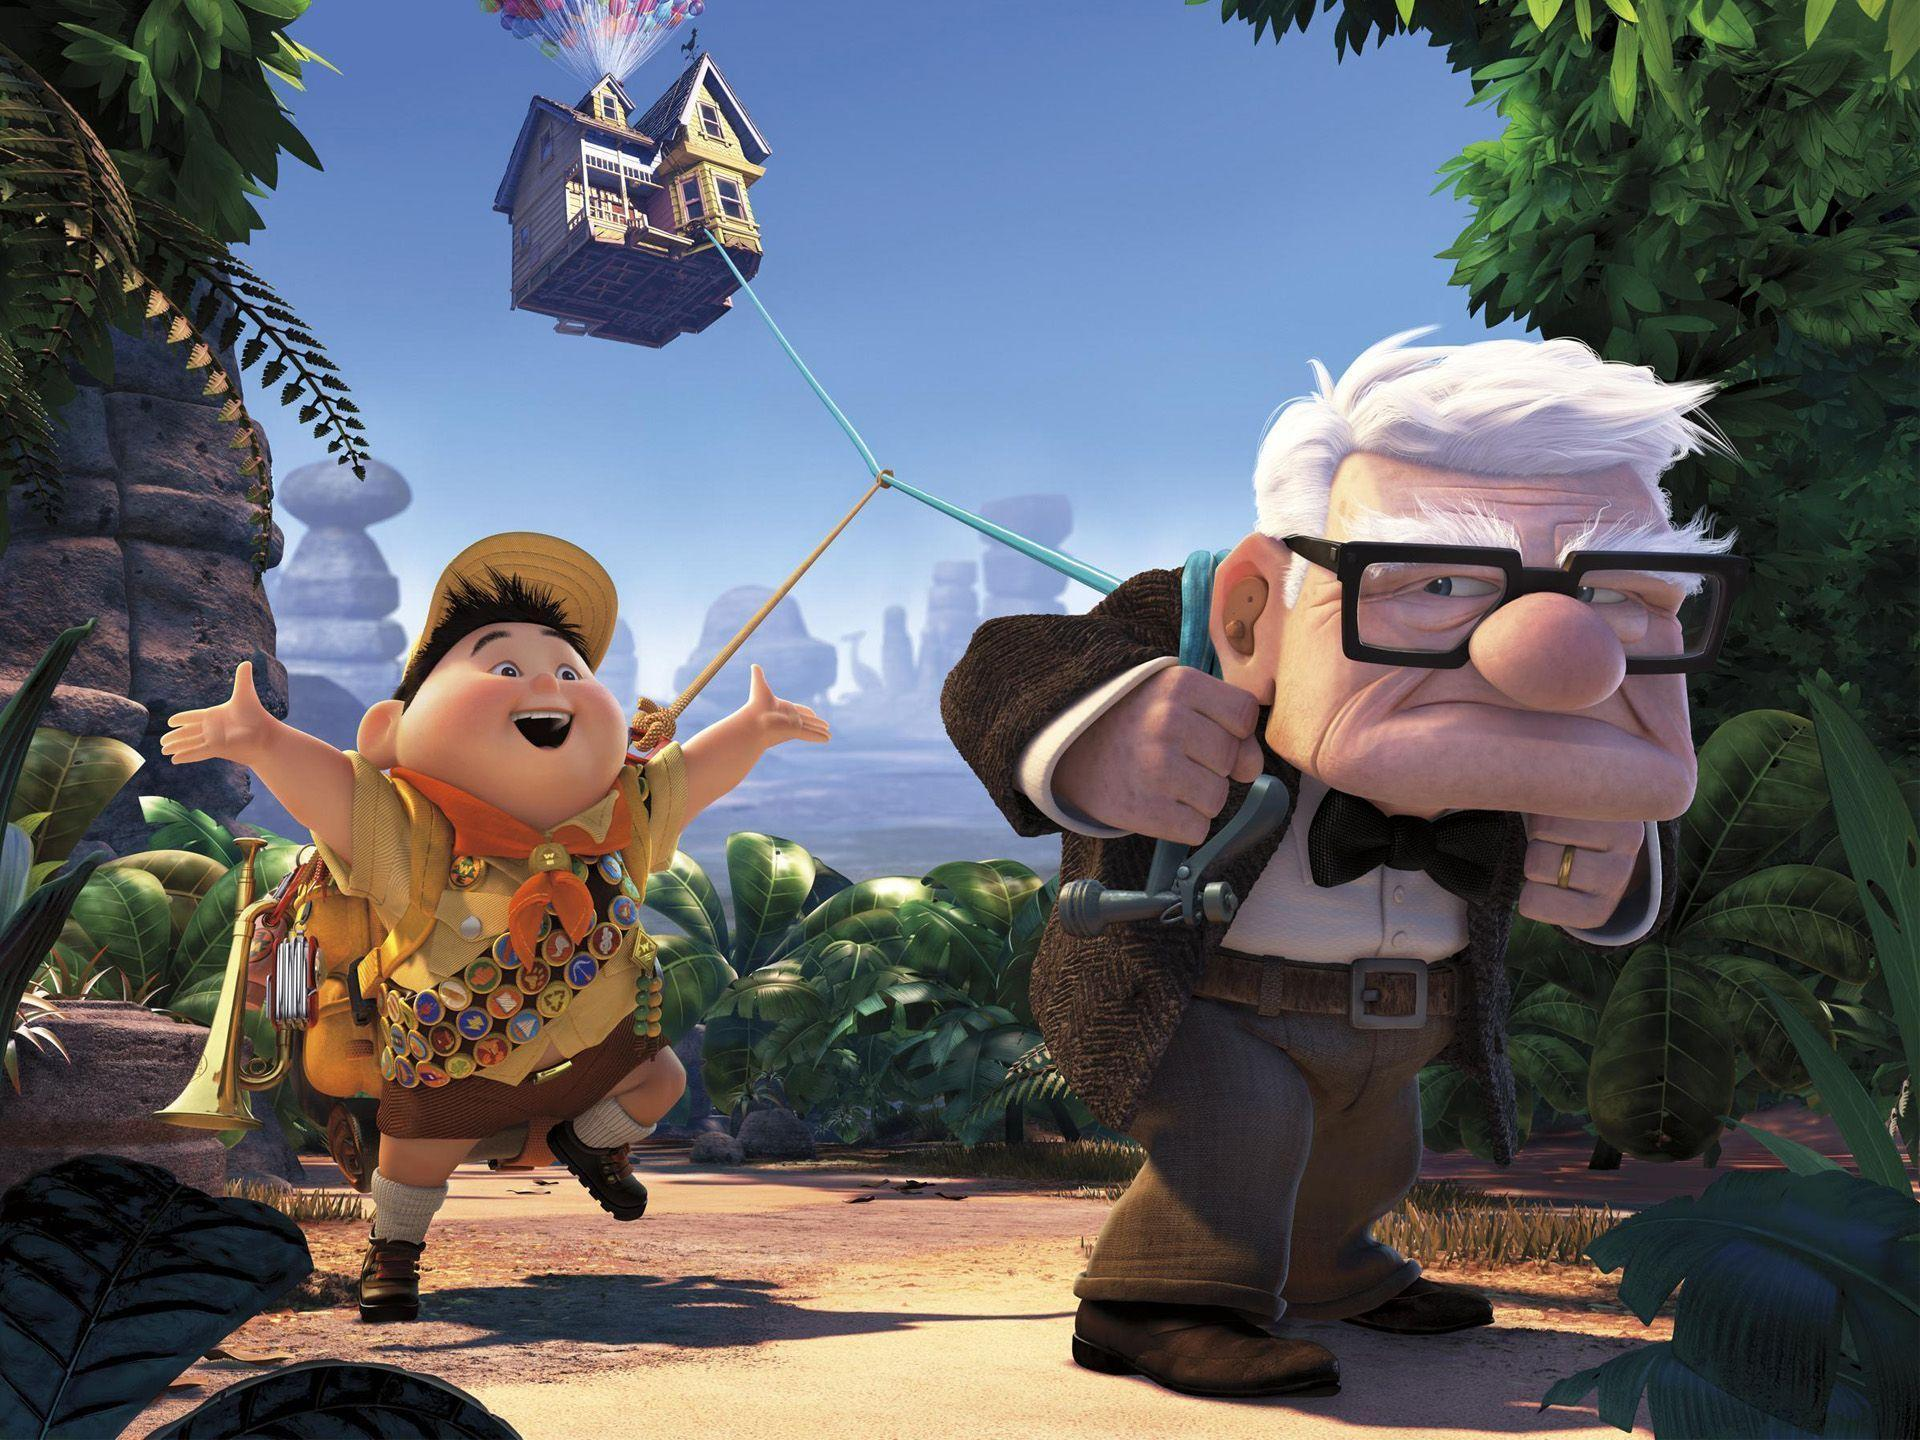 Pixar's UP Movie 2009 Wallpapers | HD Wallpapers